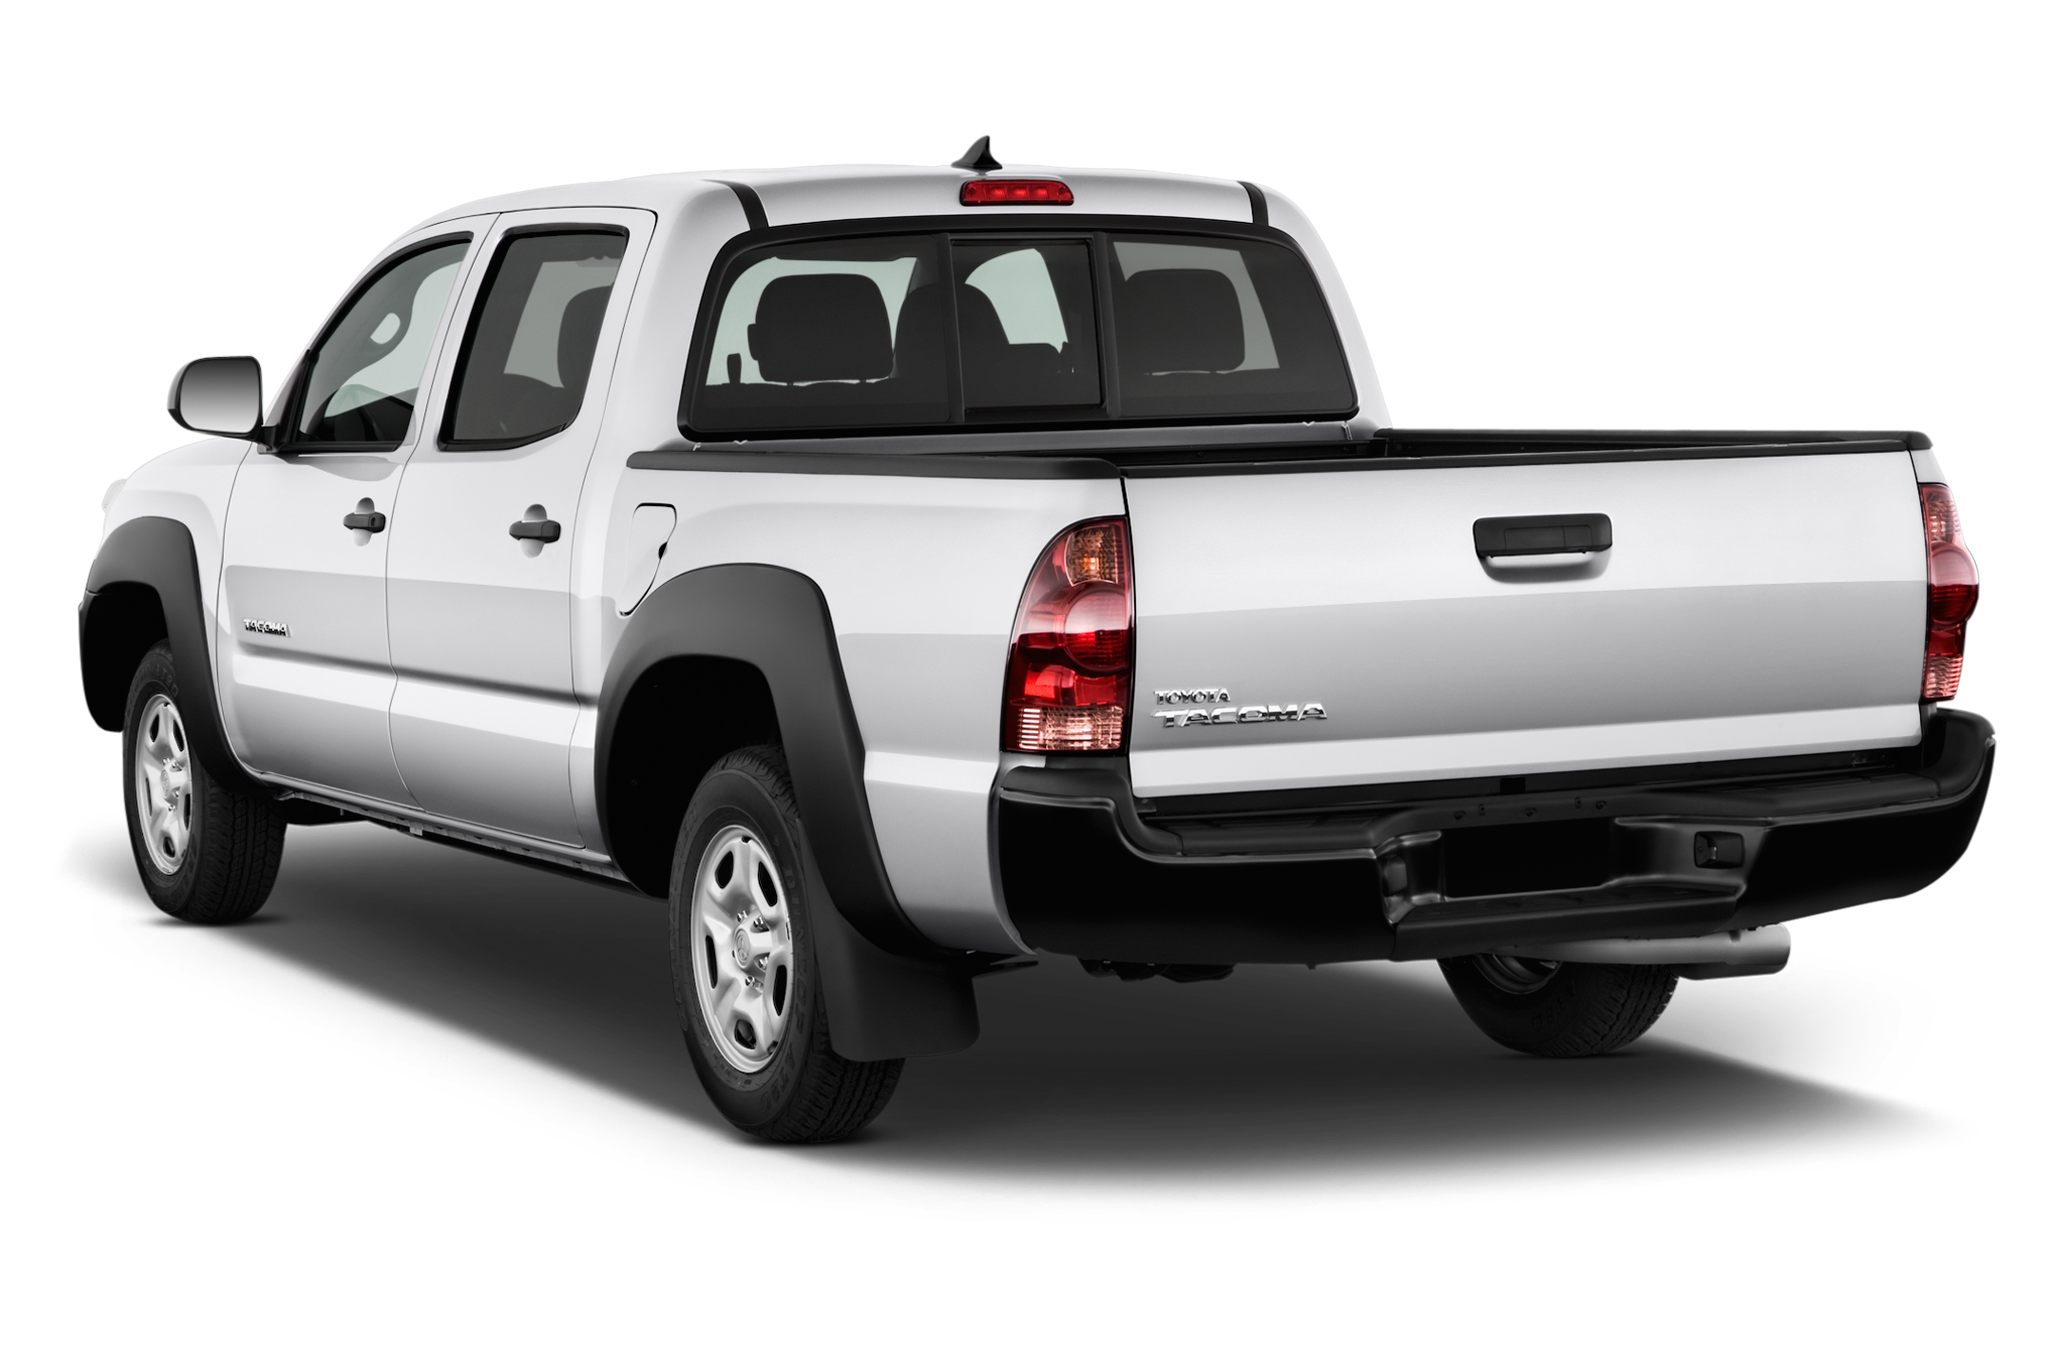 hd tacoma toyota hood formfit protector product